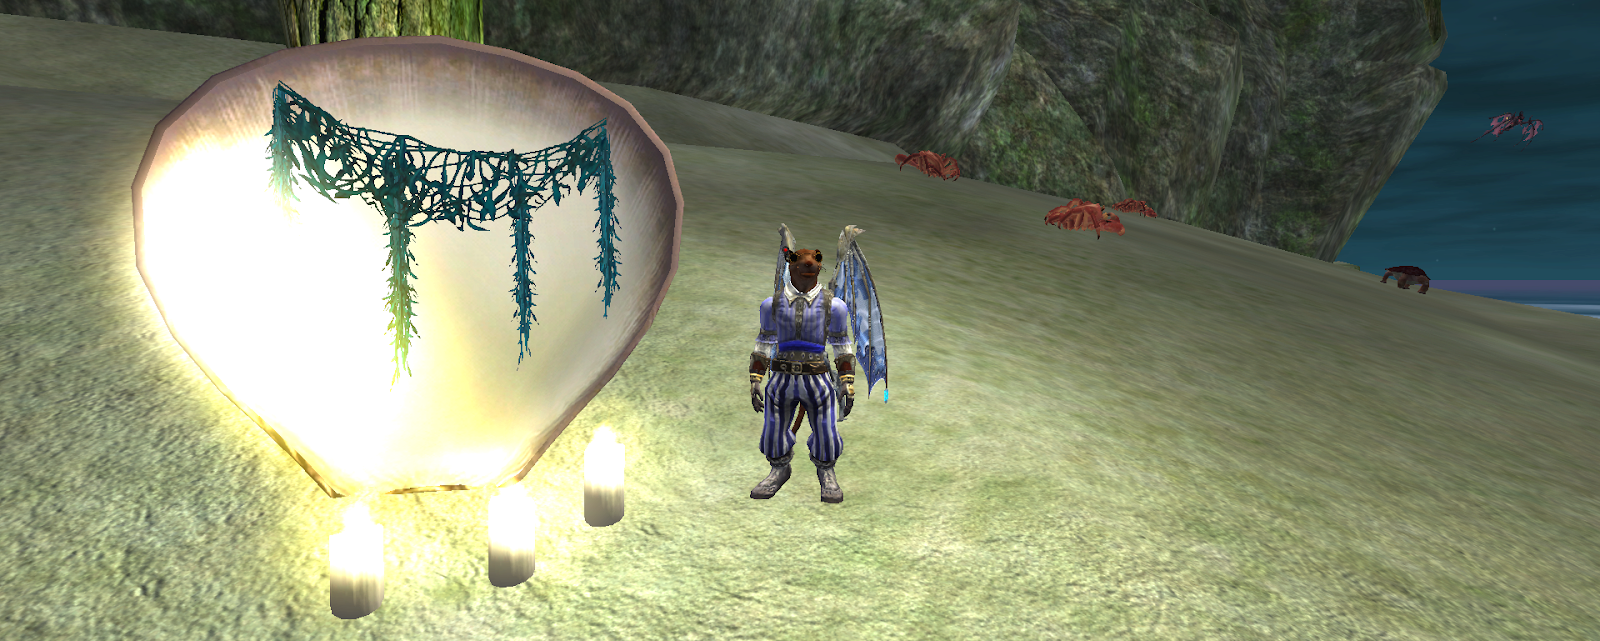 Inventory Full: Down By The Sea: EQ2